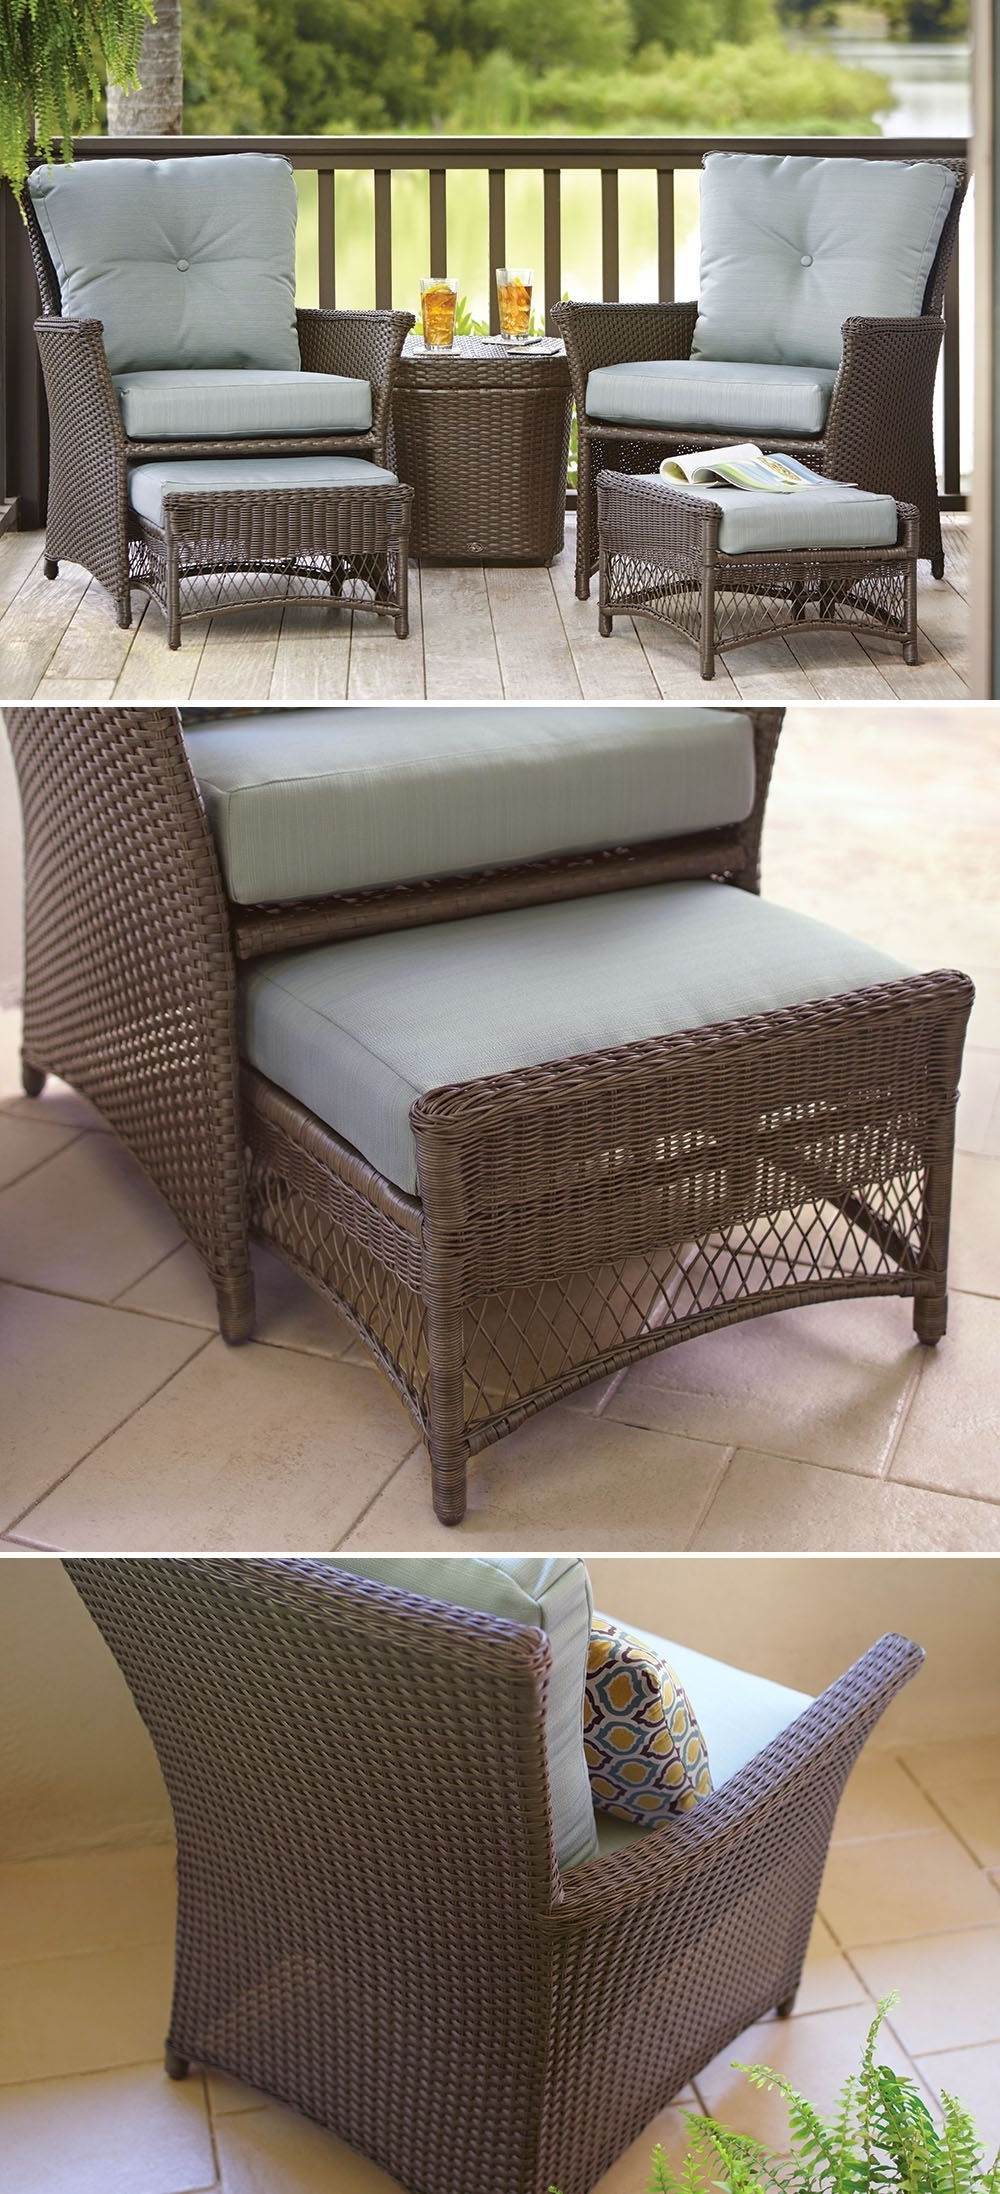 This Affordable Patio Set Is Just The Right Size For Your Small Inside Preferred Patio Conversation Sets With Ottoman (View 14 of 20)